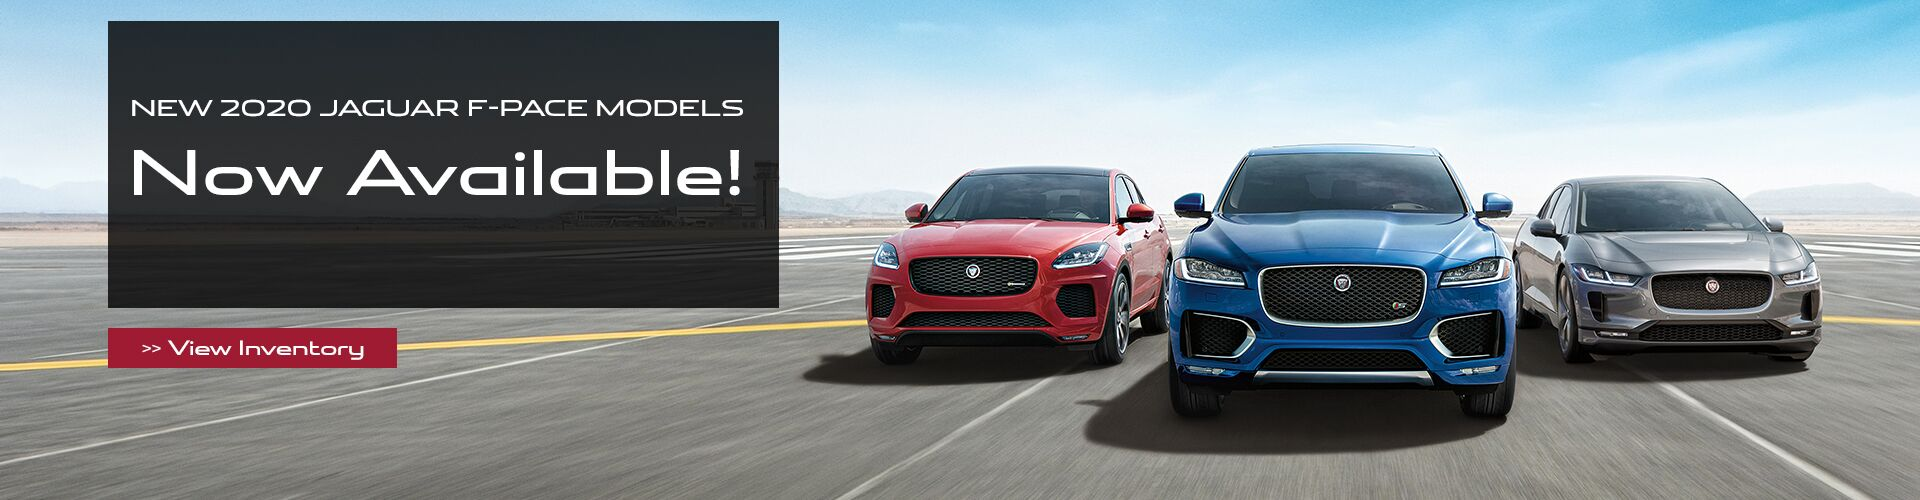 NEW 2020 Jaguar F-PACE Models in Boerne & San Antonio TX